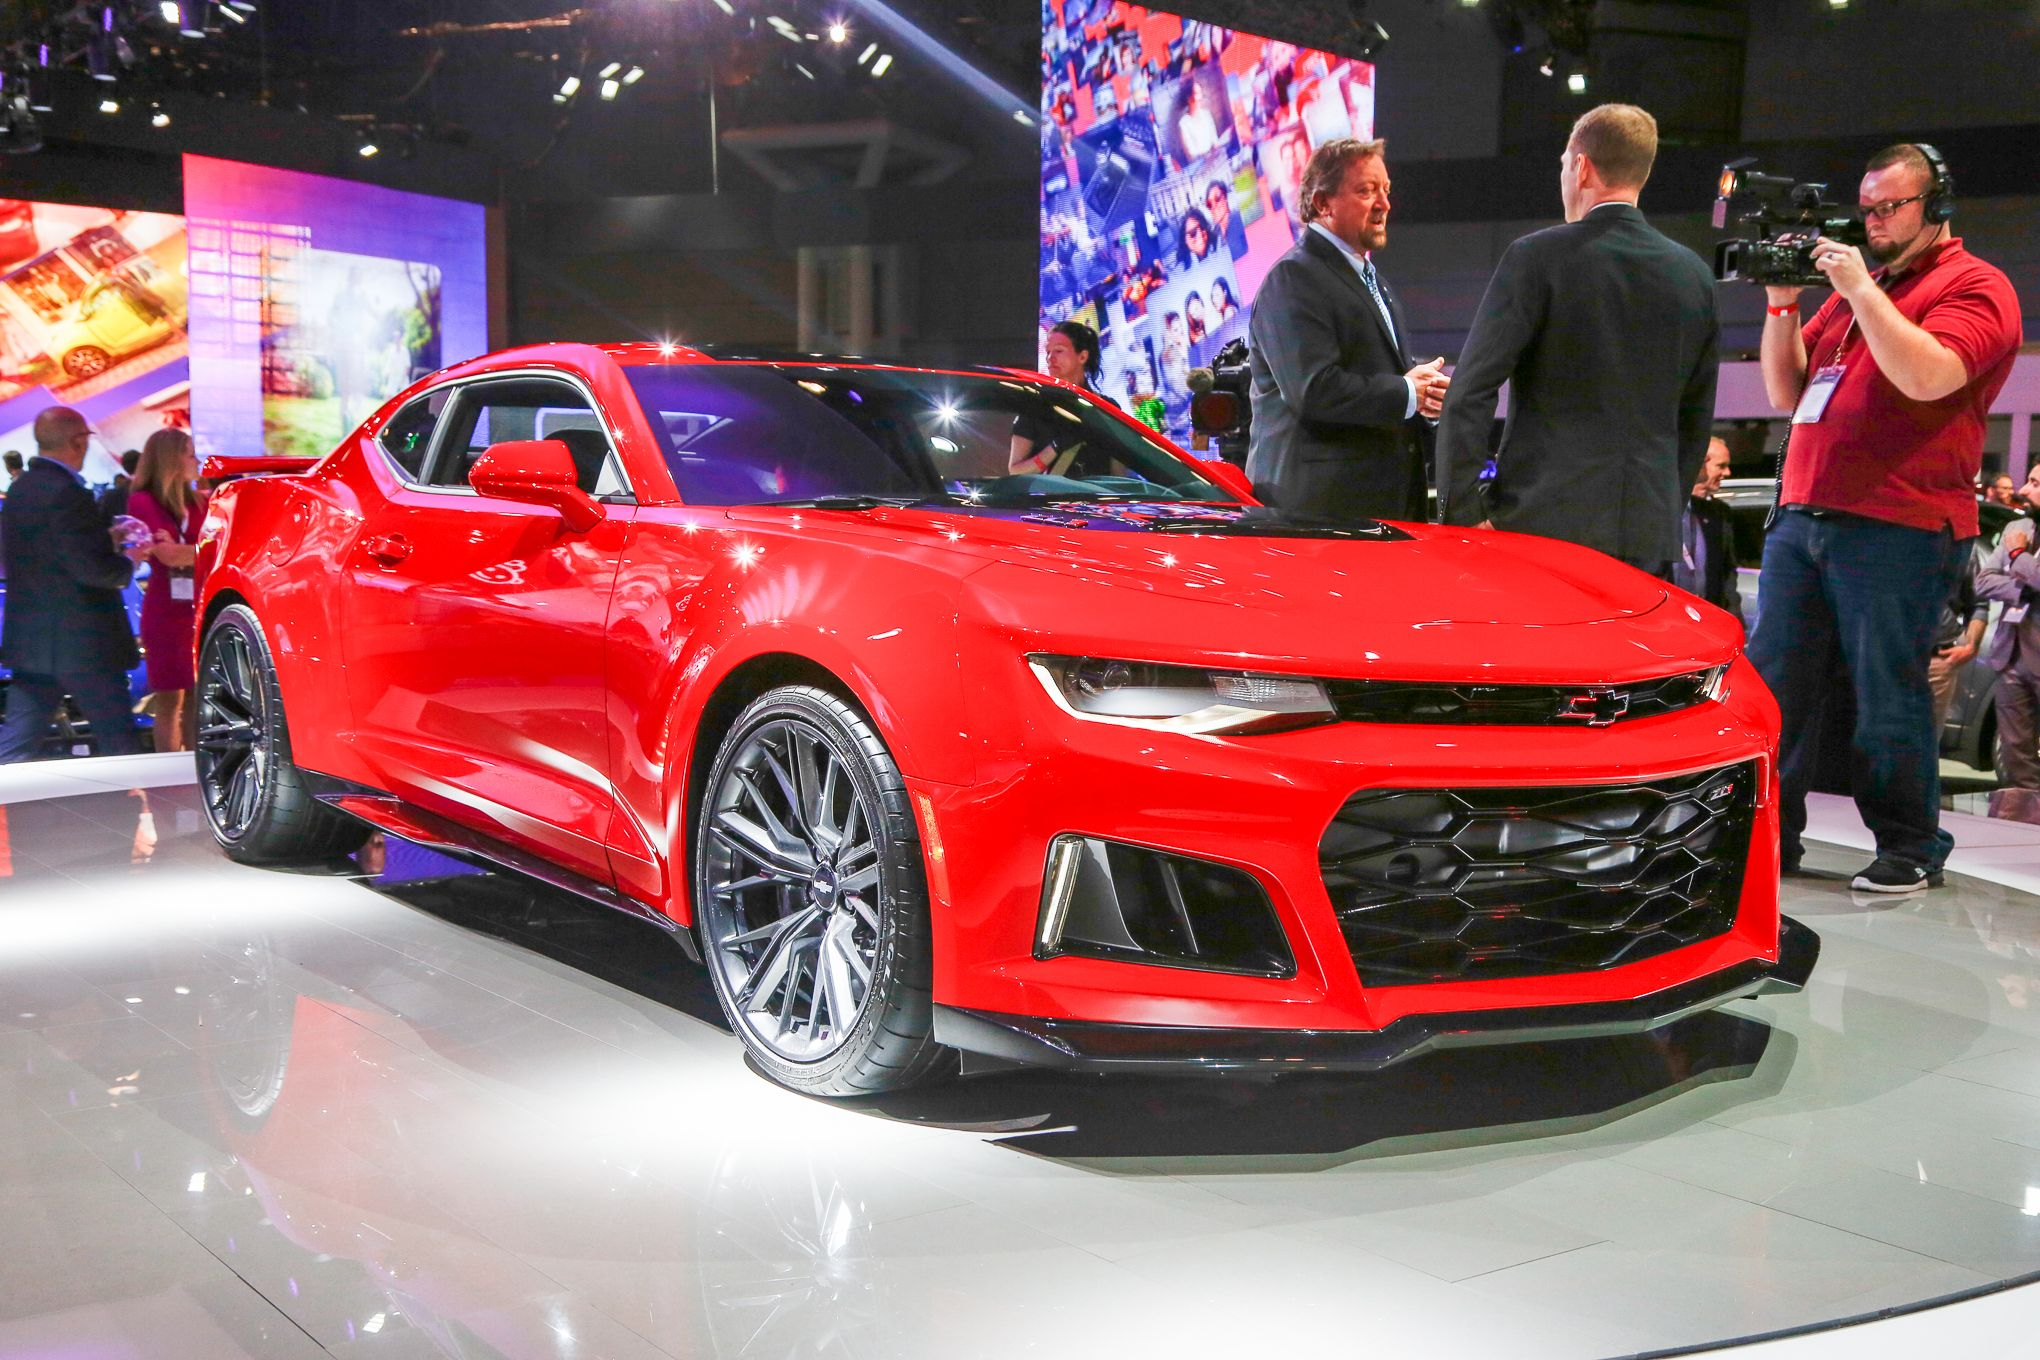 Chevrolet camaro zl1 2017 sport cars pinterest camaro zl1 chevrolet camaro and chevrolet